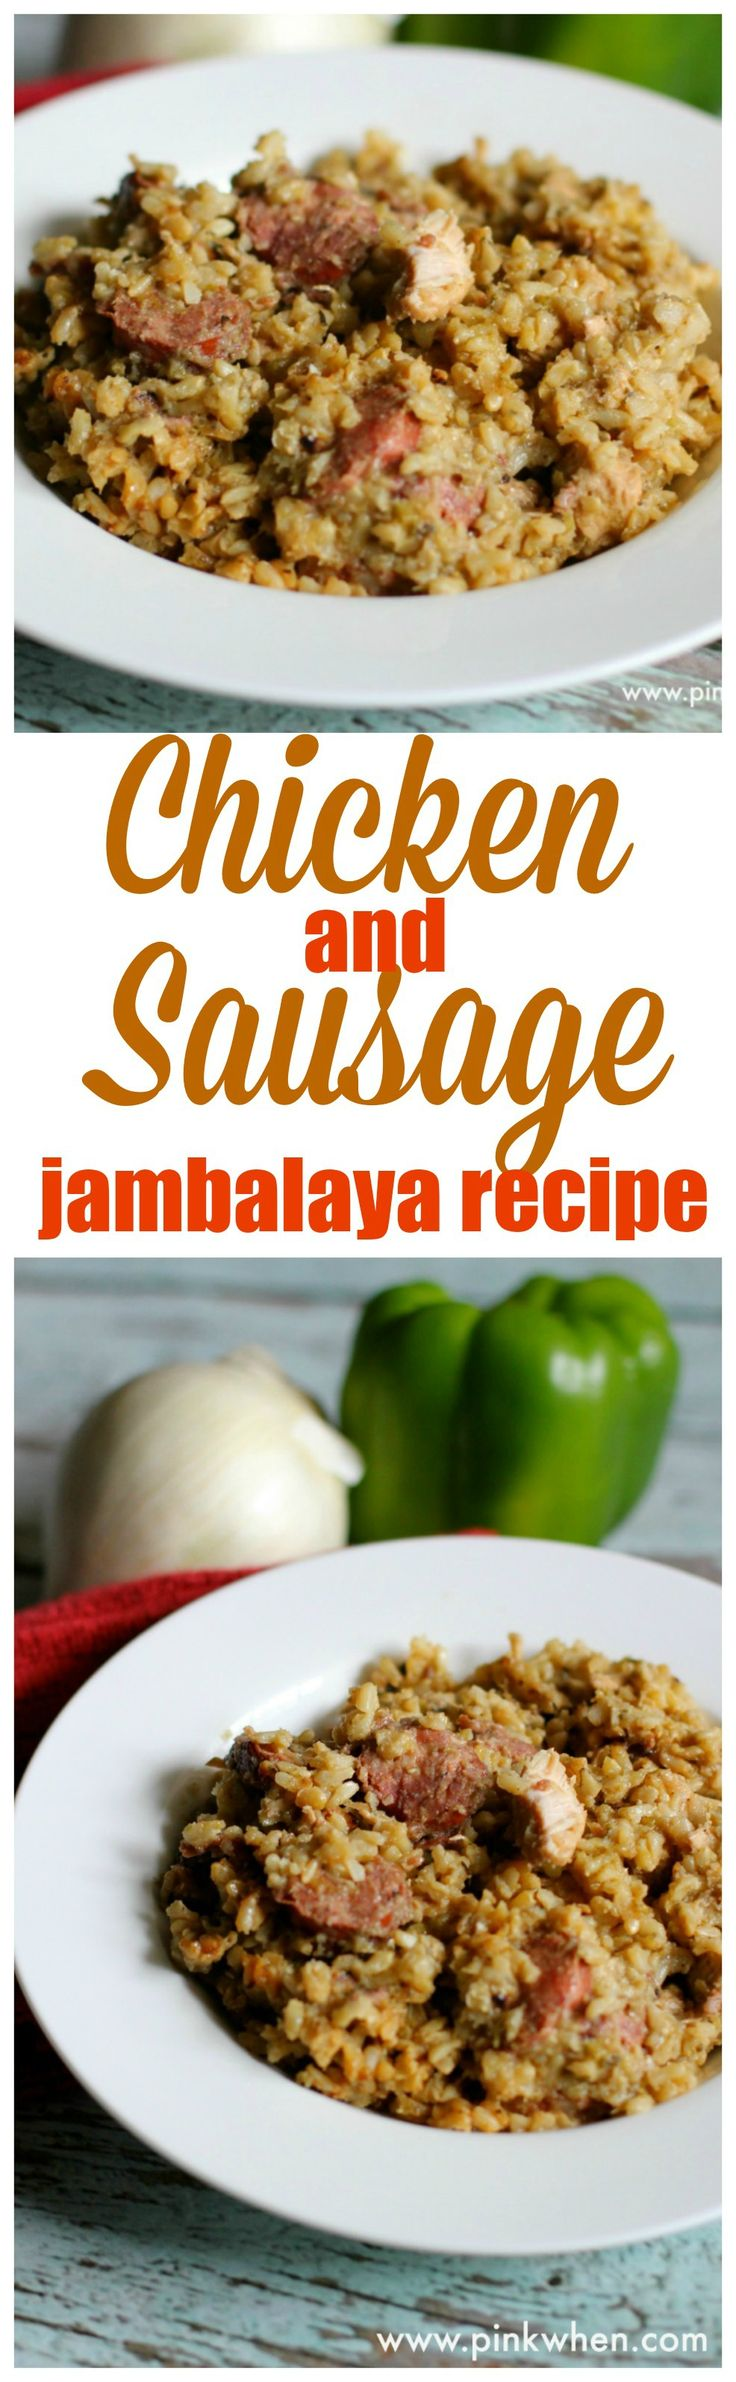 A delicious cajun dish! Chicken and Sausage Jambalaya recipe. YUM!